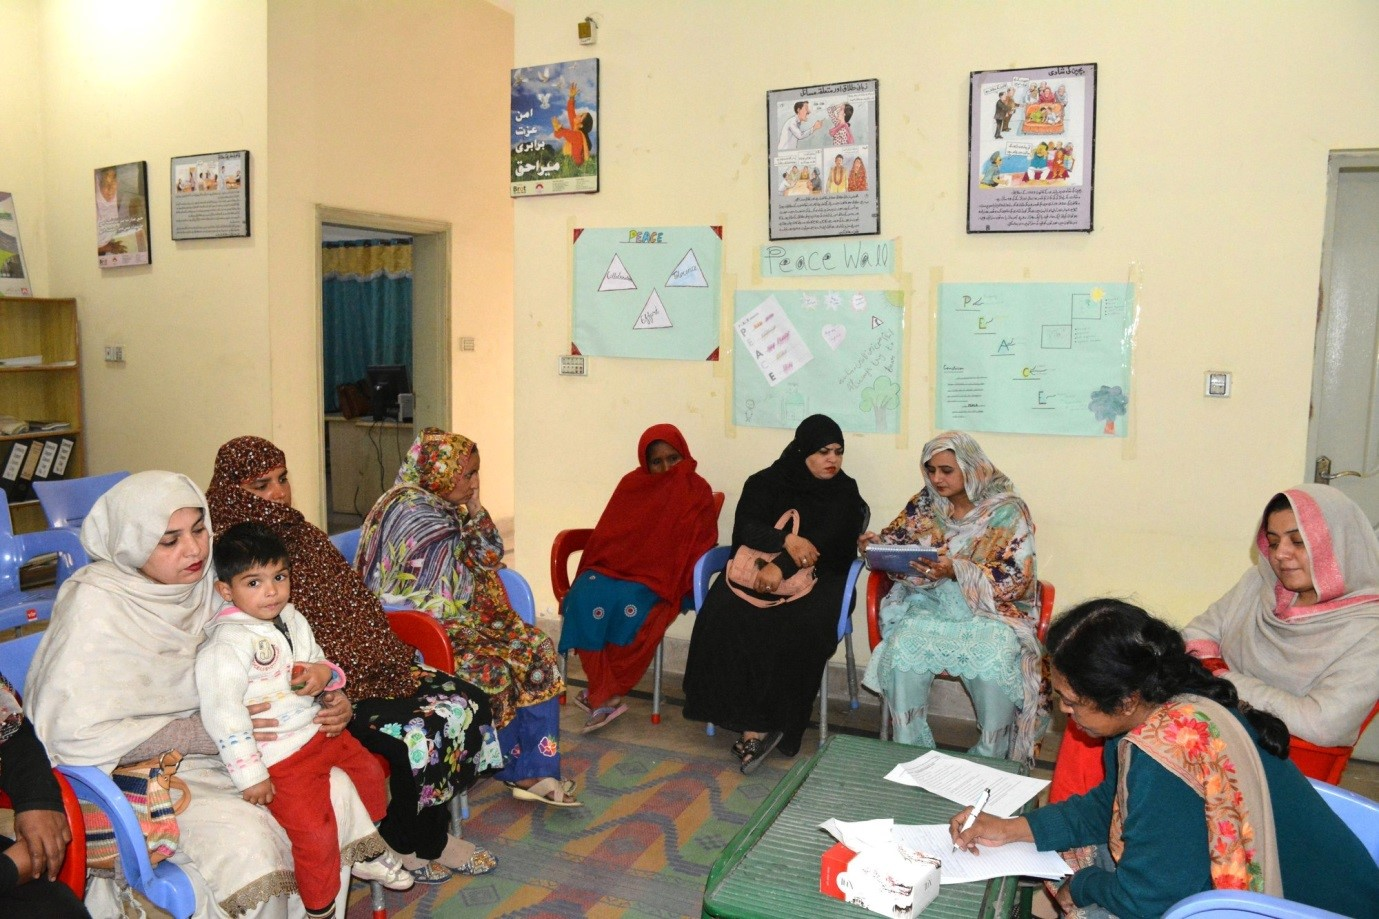 Project Evaluation On Women's Rights and Capacity Development